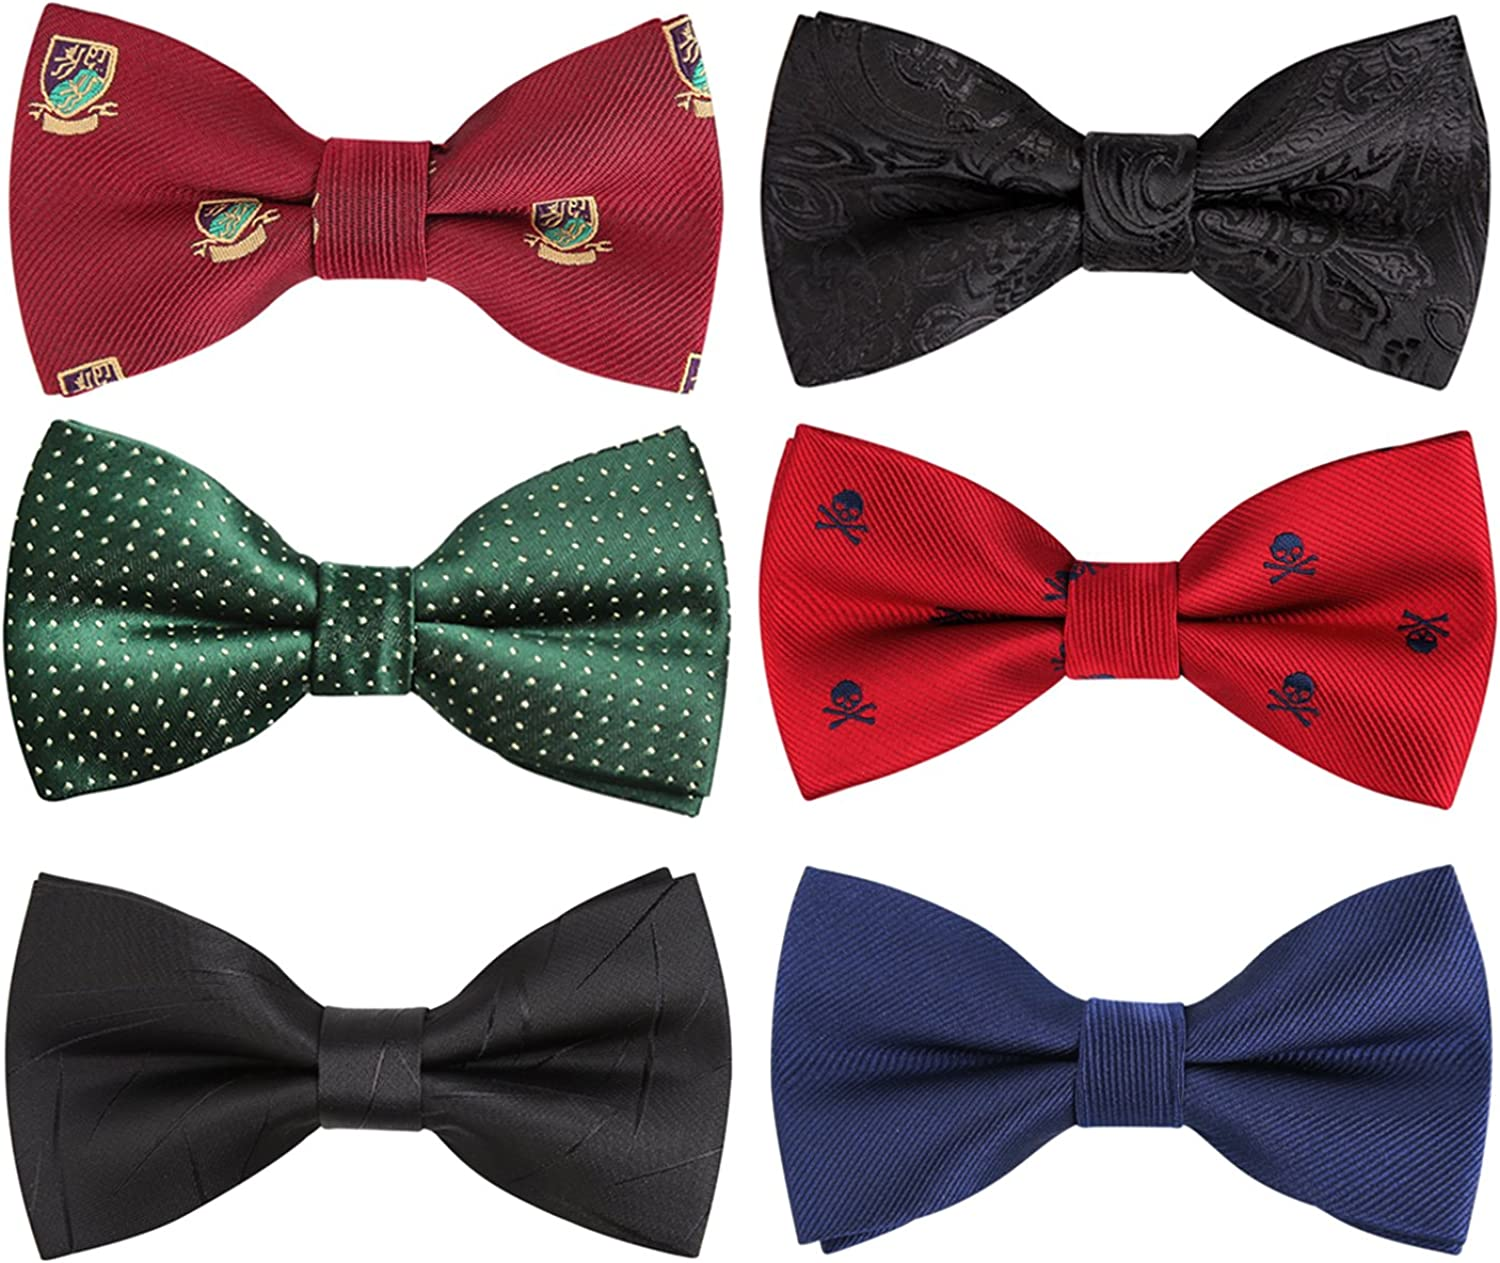 Red And White Checkered Pre-Tied Bow Tie Adjustable Bowties for Mens /& Boys